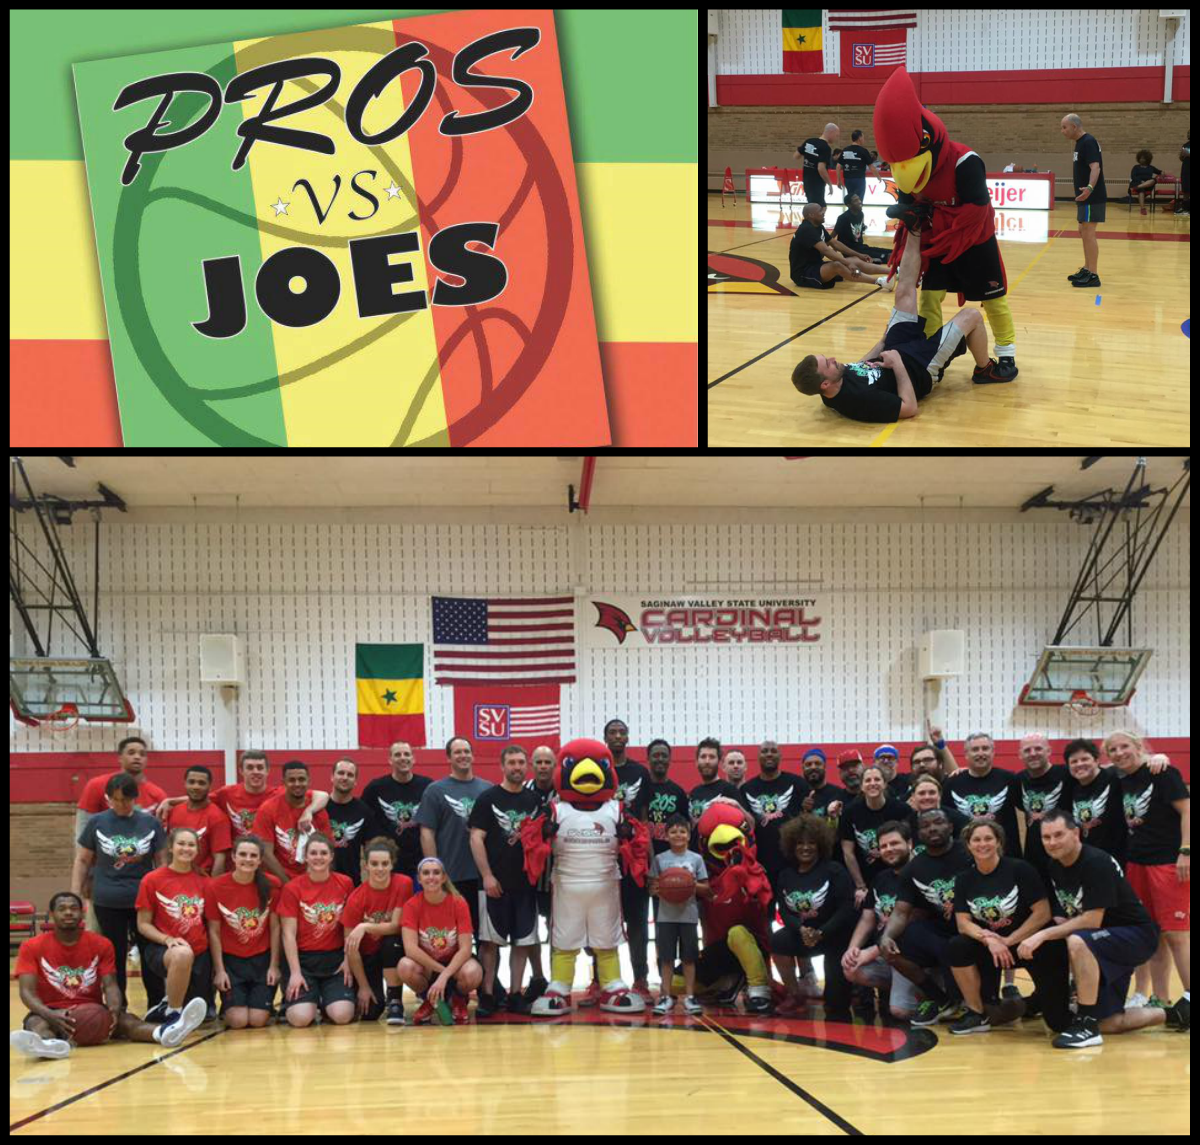 Pros vs. Joes basketball fundraising competition supports the Abou Traore Memorial Scholarships for international students